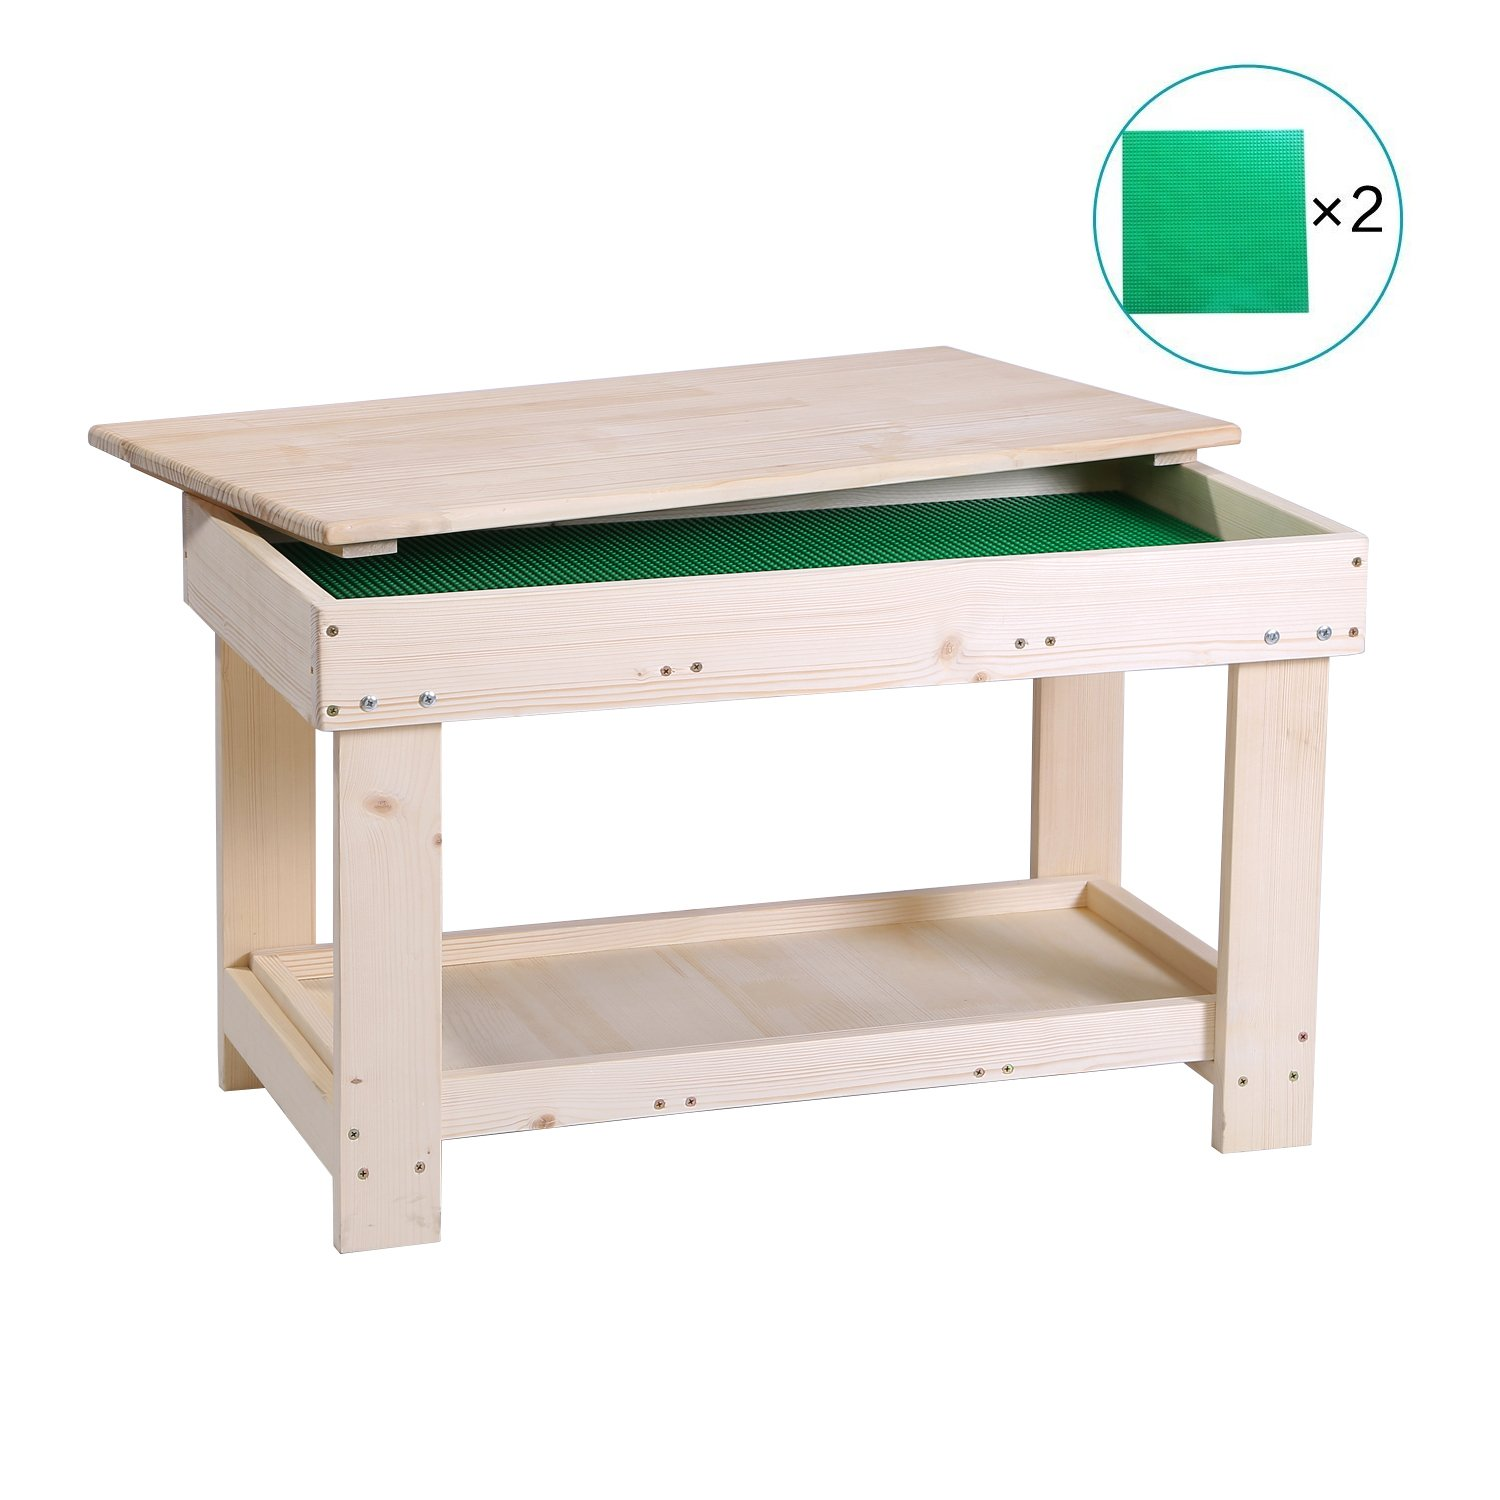 YouHi N in 1 Double Deck Design Wooden Multi-Activity Play Table for Block Board